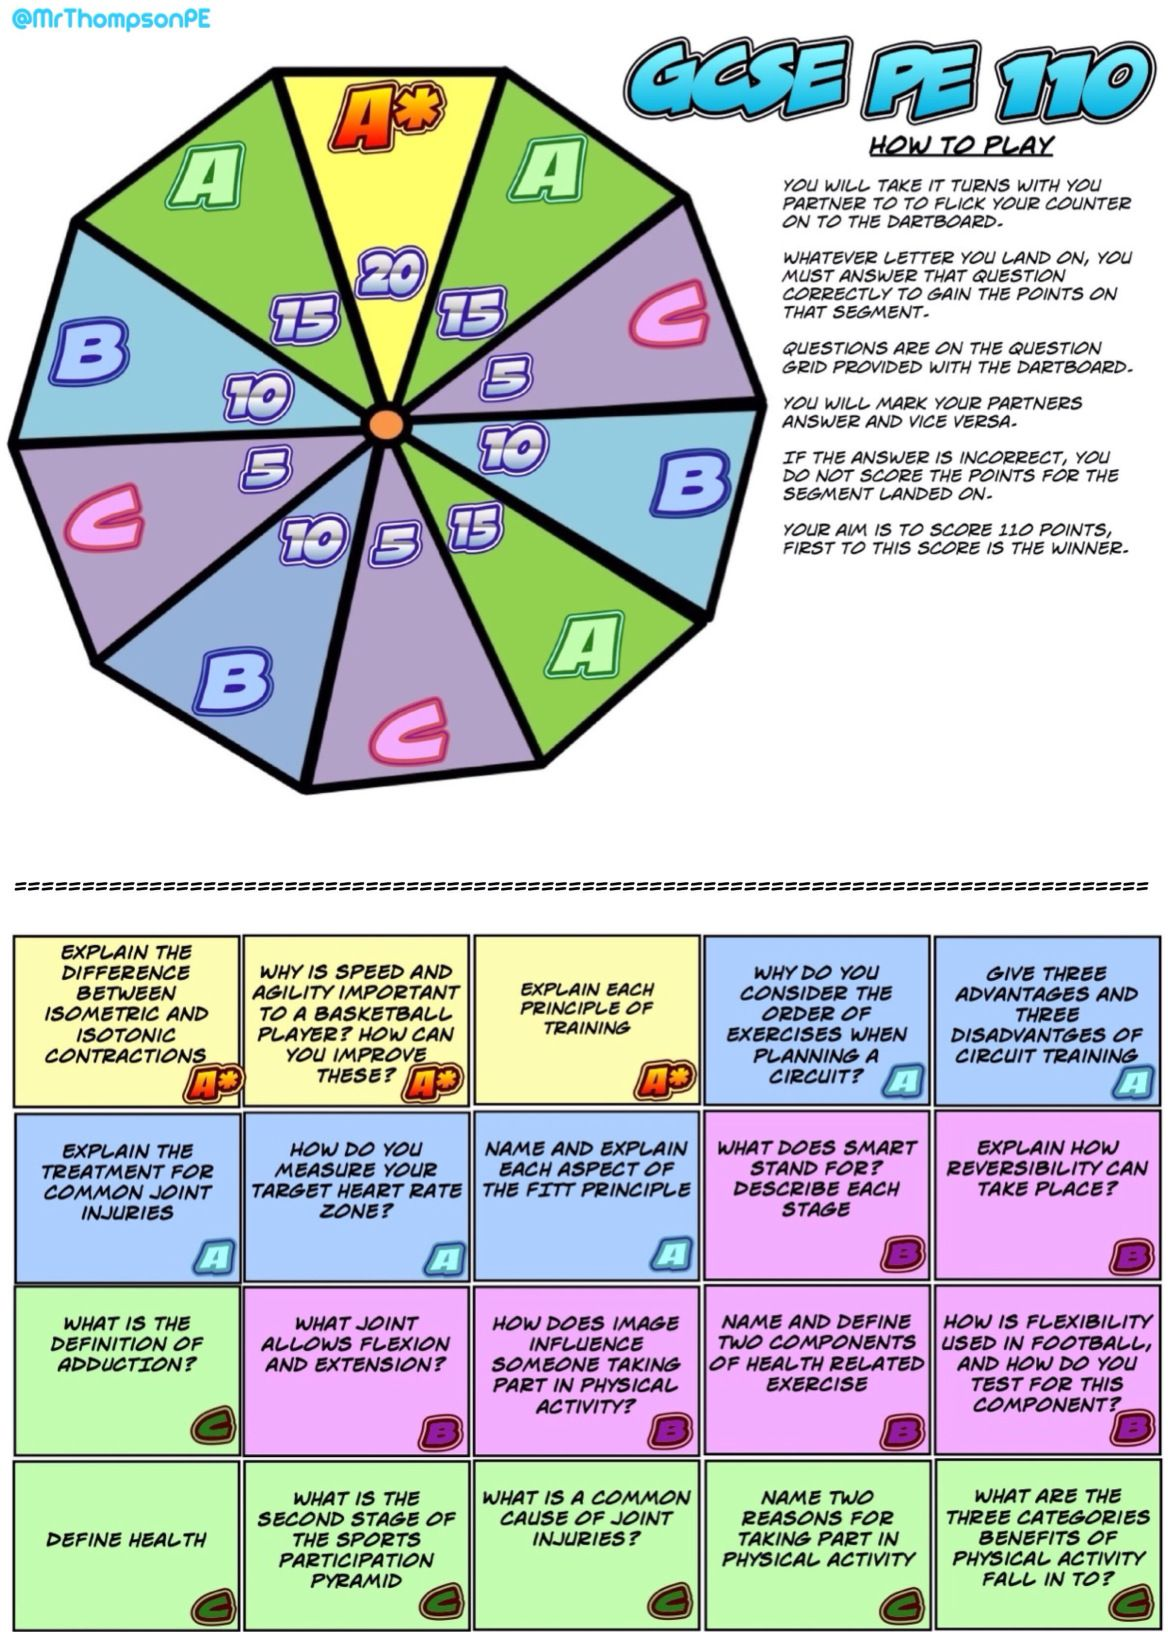 GCSE PE and A Level PE Revision Games and Resources | Pinterest ...